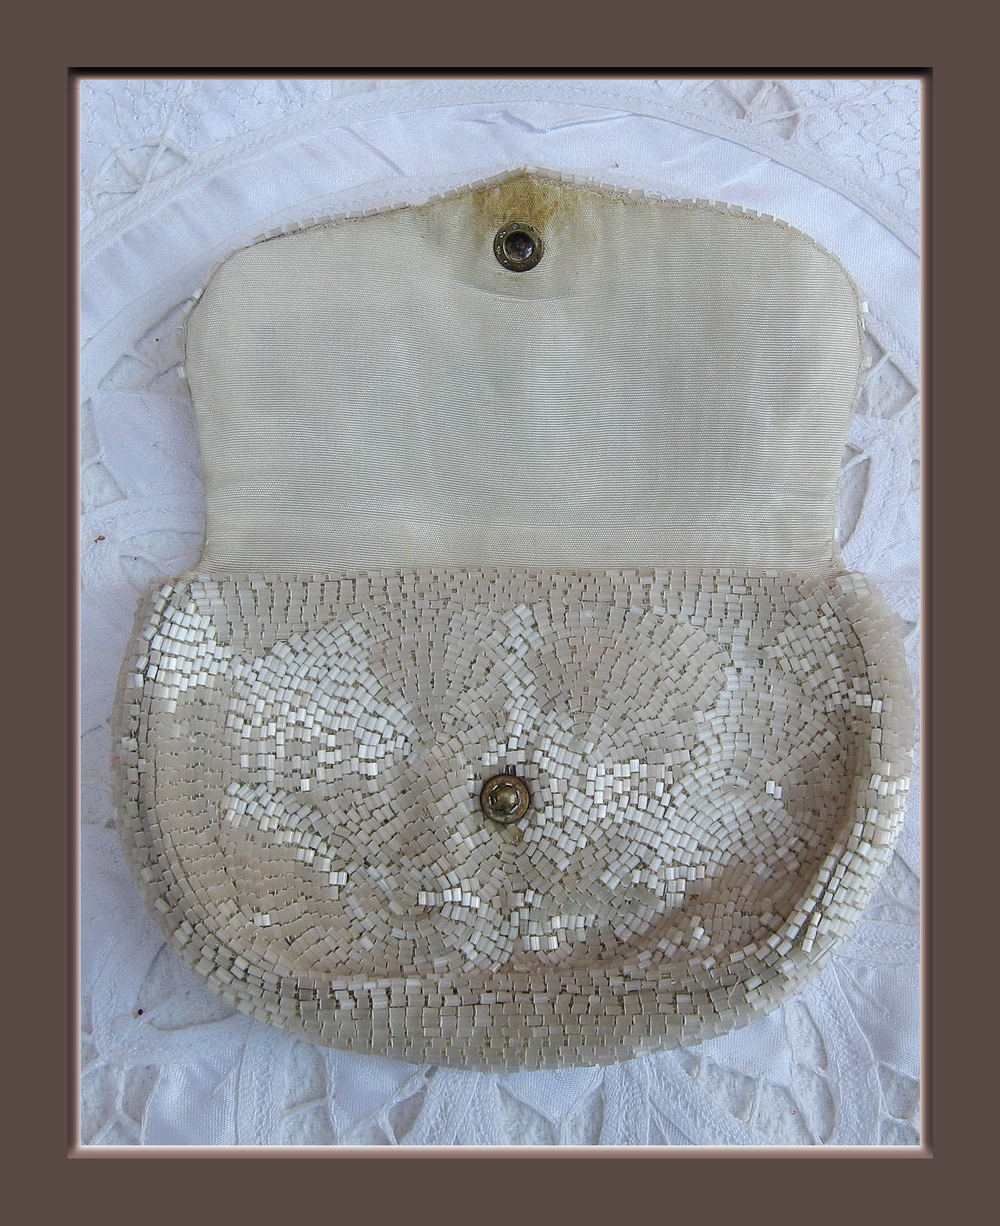 Sac a main bourse minauriere de perles blanches belle for Fougere interieur